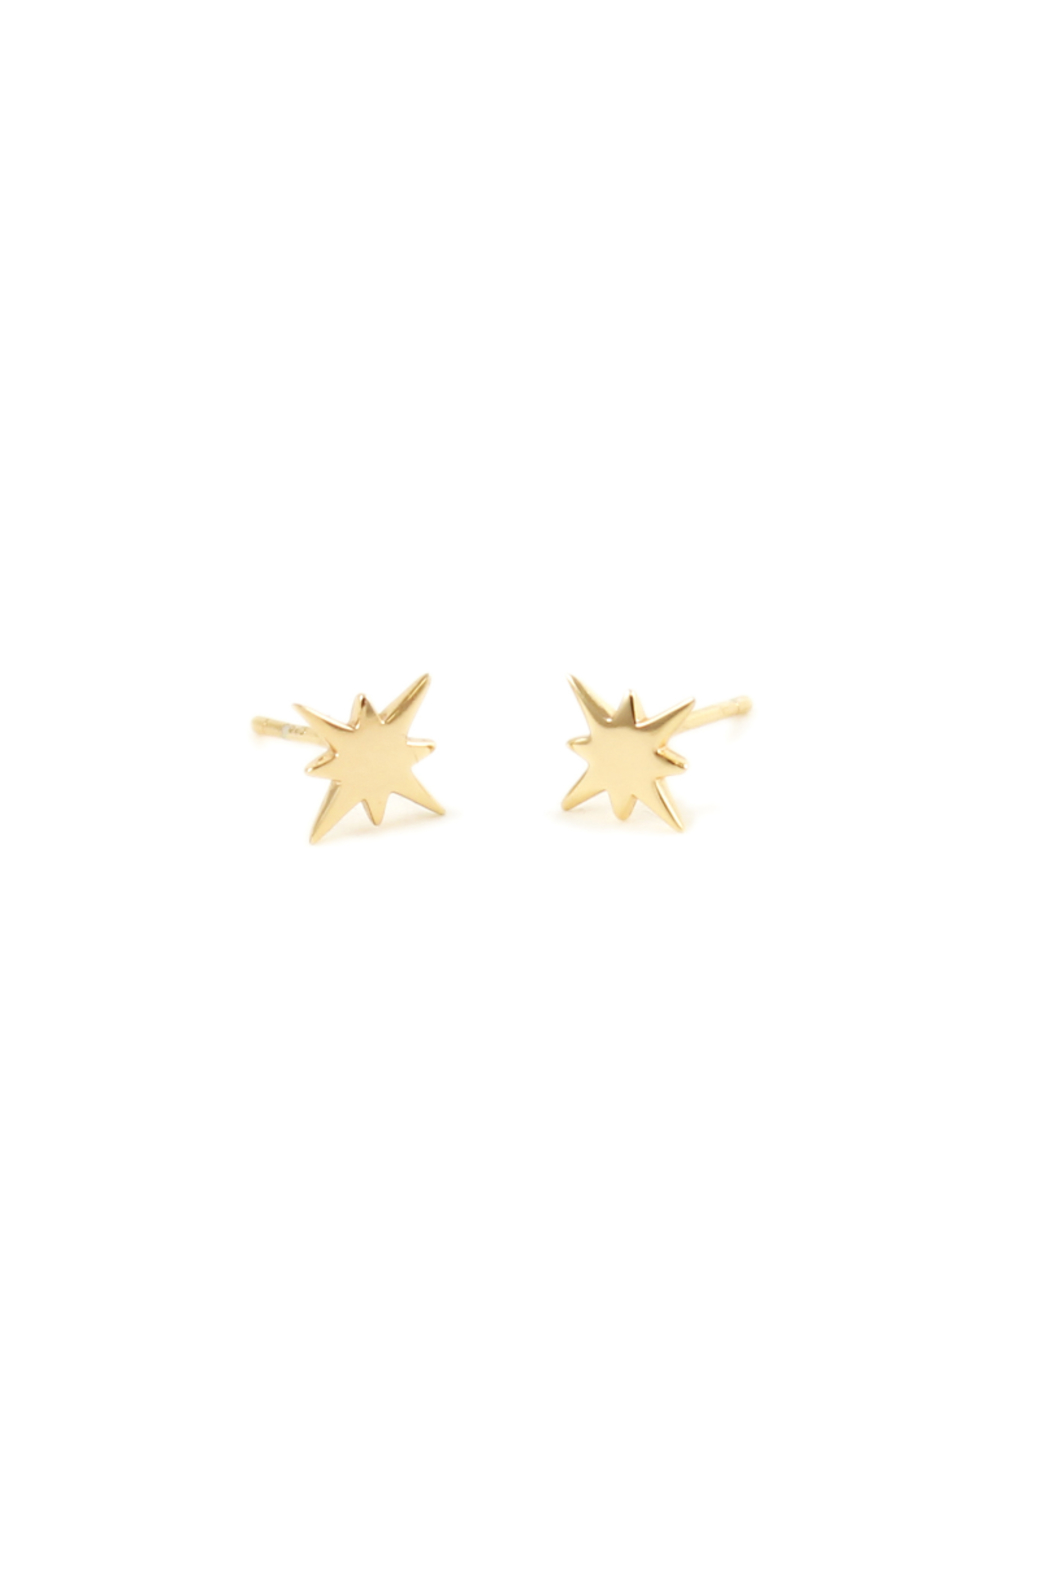 Kris Nations STARBURST EARRINGS - Front Cropped Image